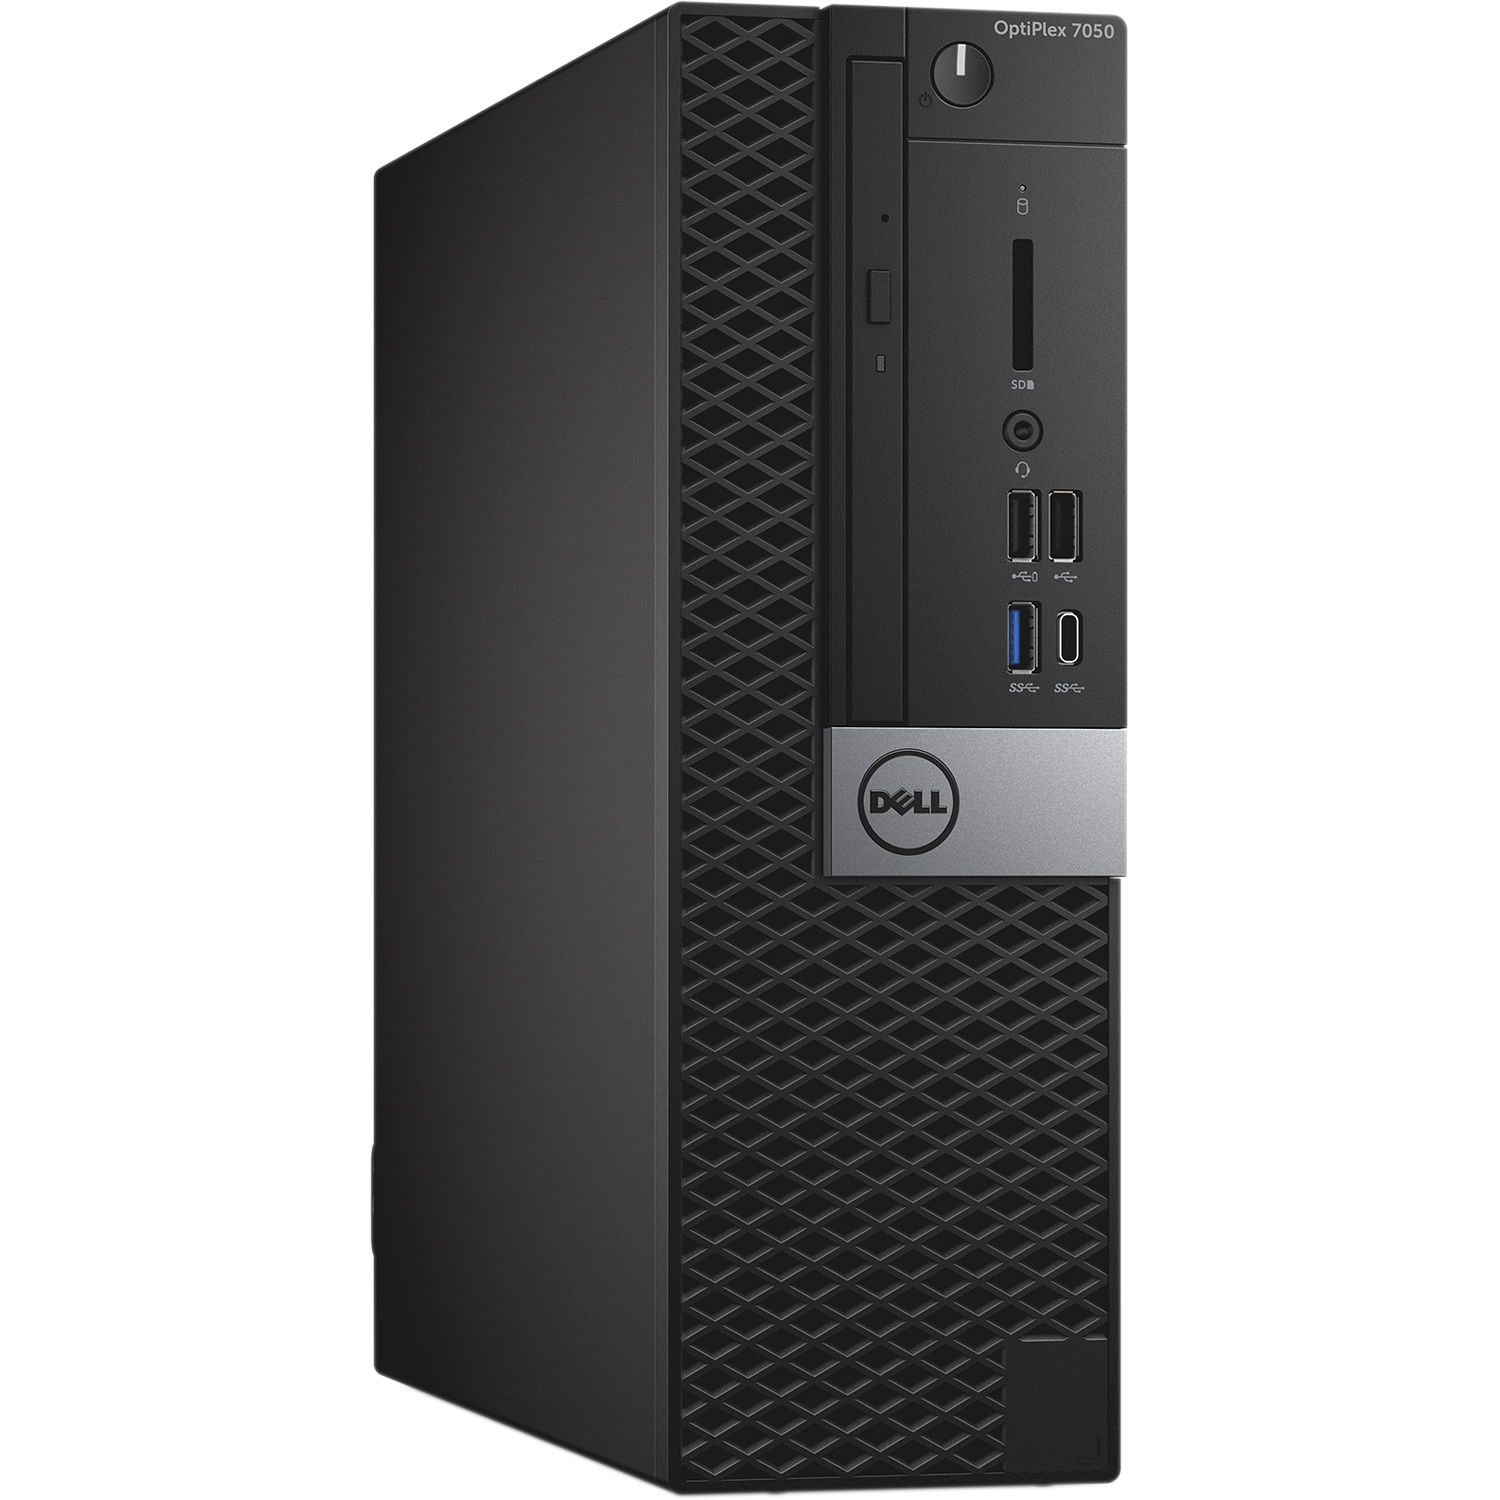 Dell OptiPlex 7050 Small Form Factor Desktop Computer PX8WD B&H